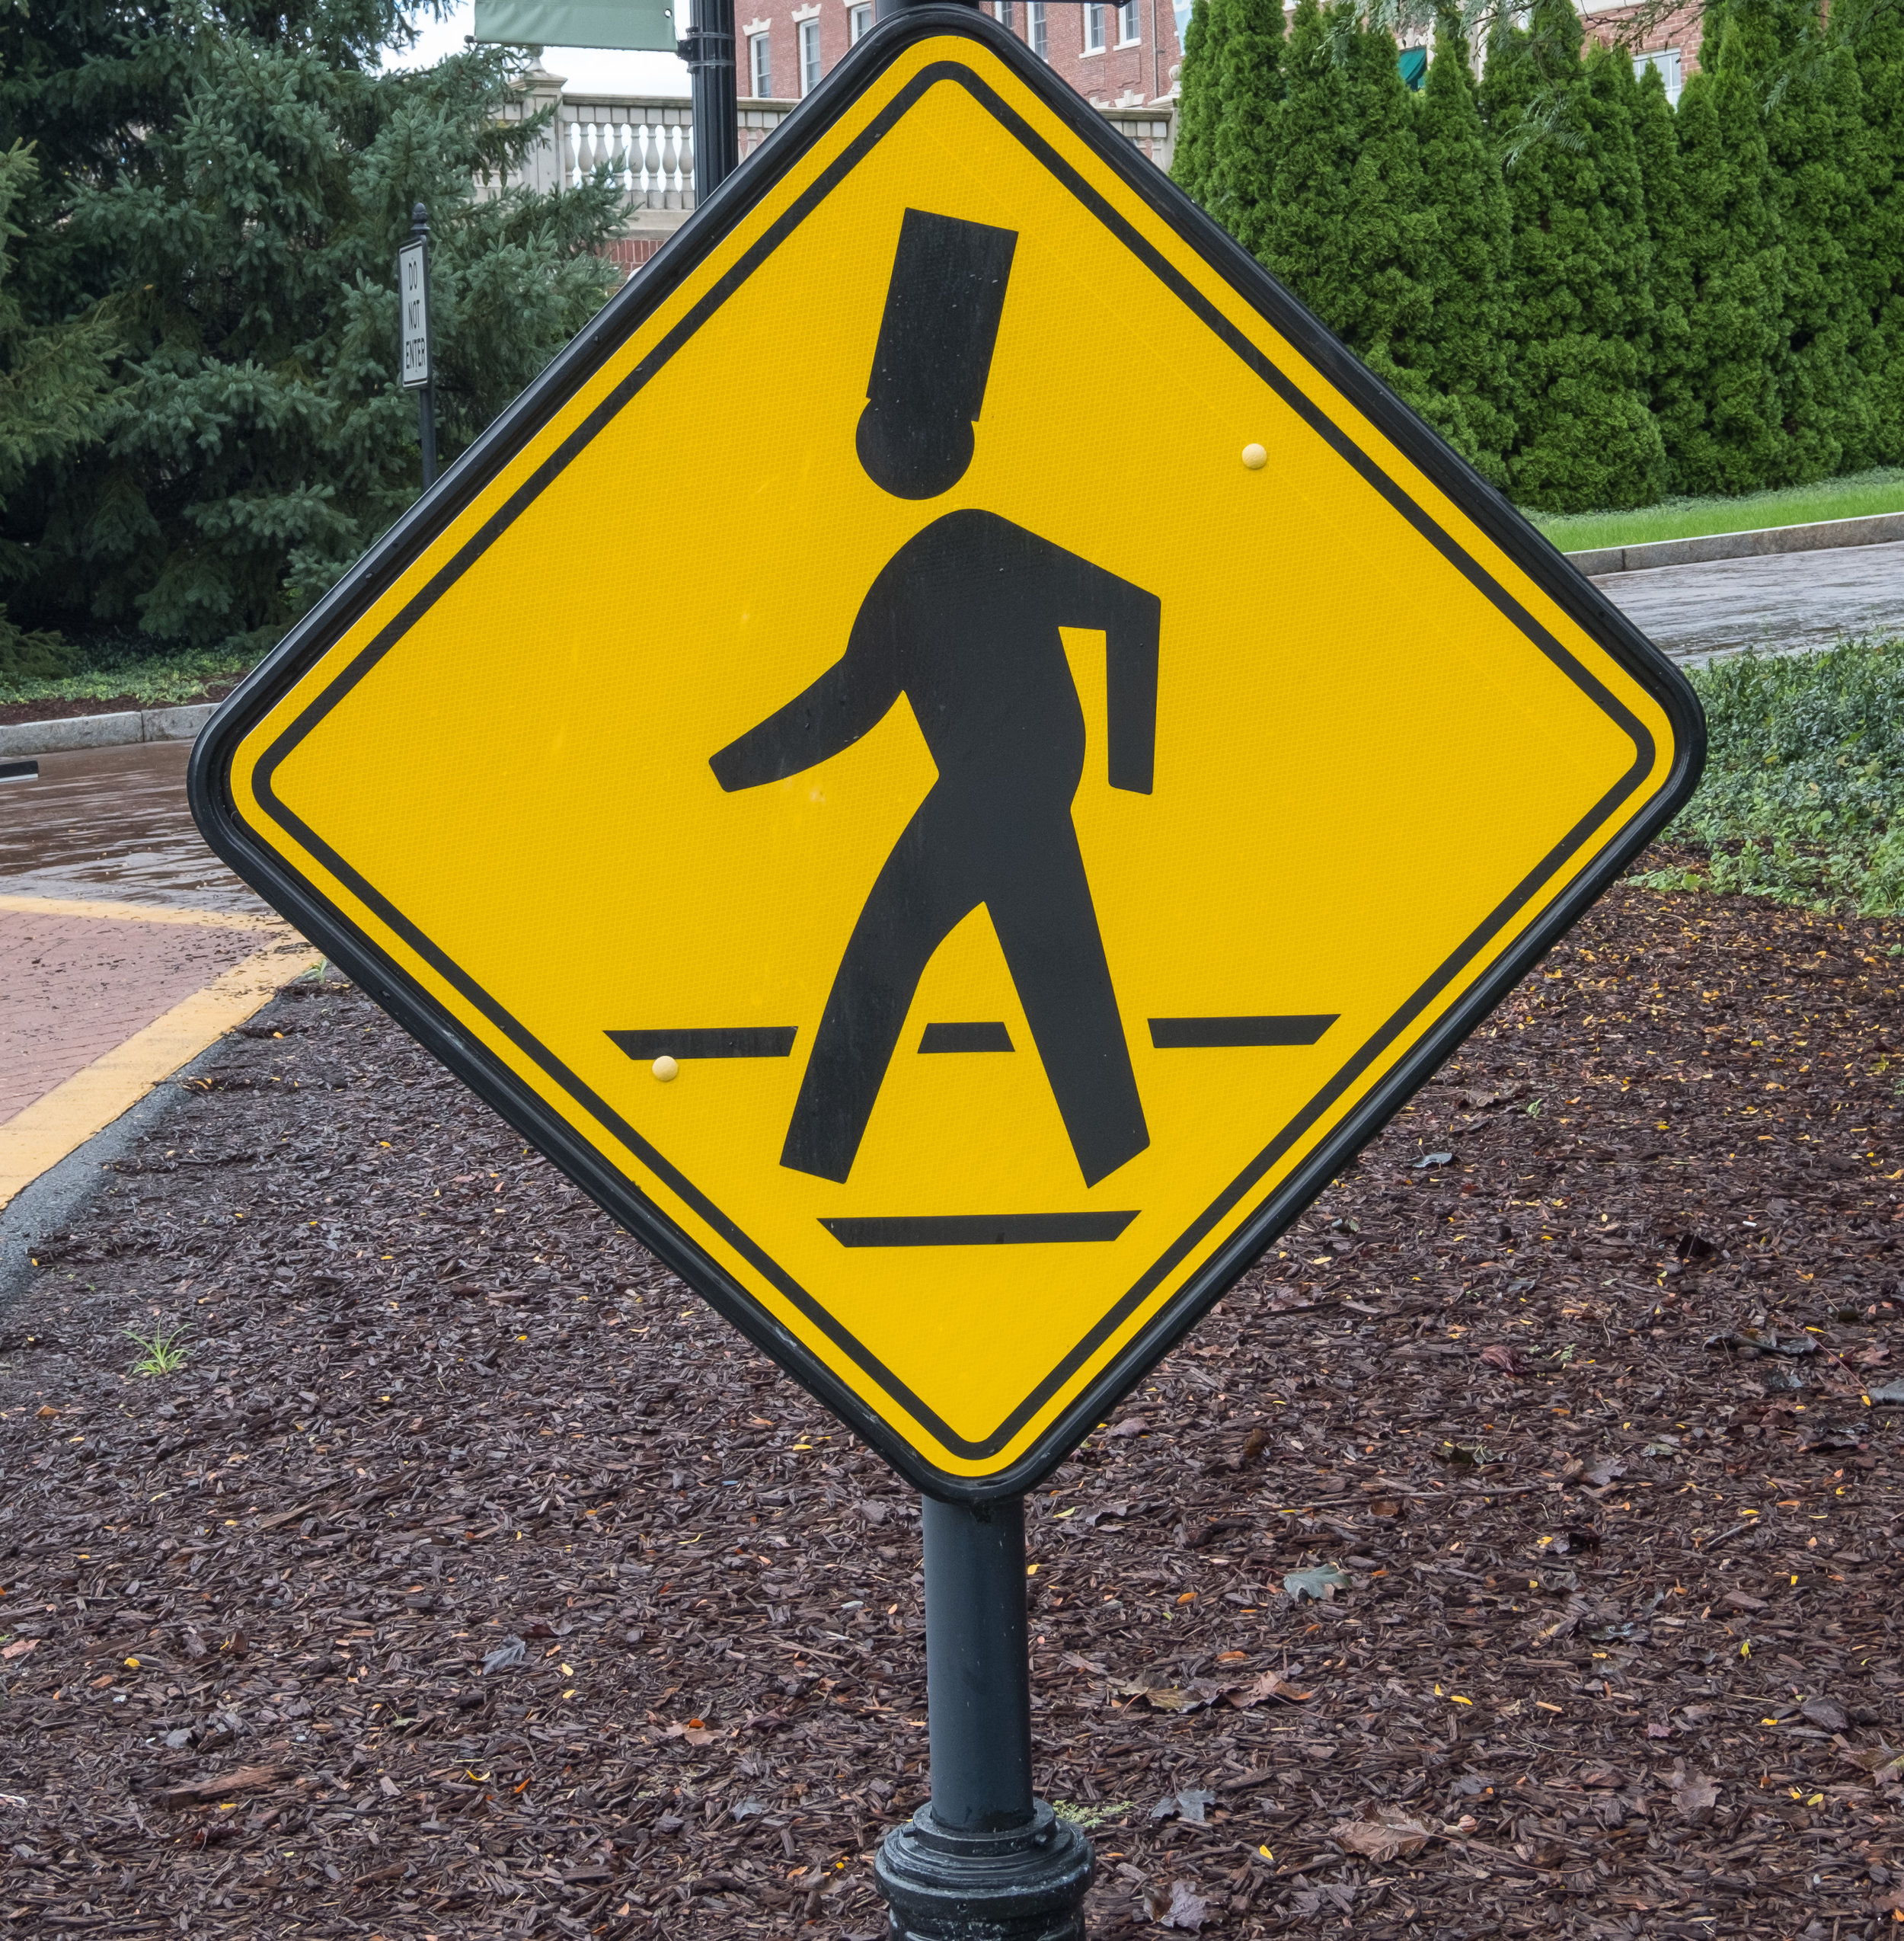 You have to smile at the student crossing signs.